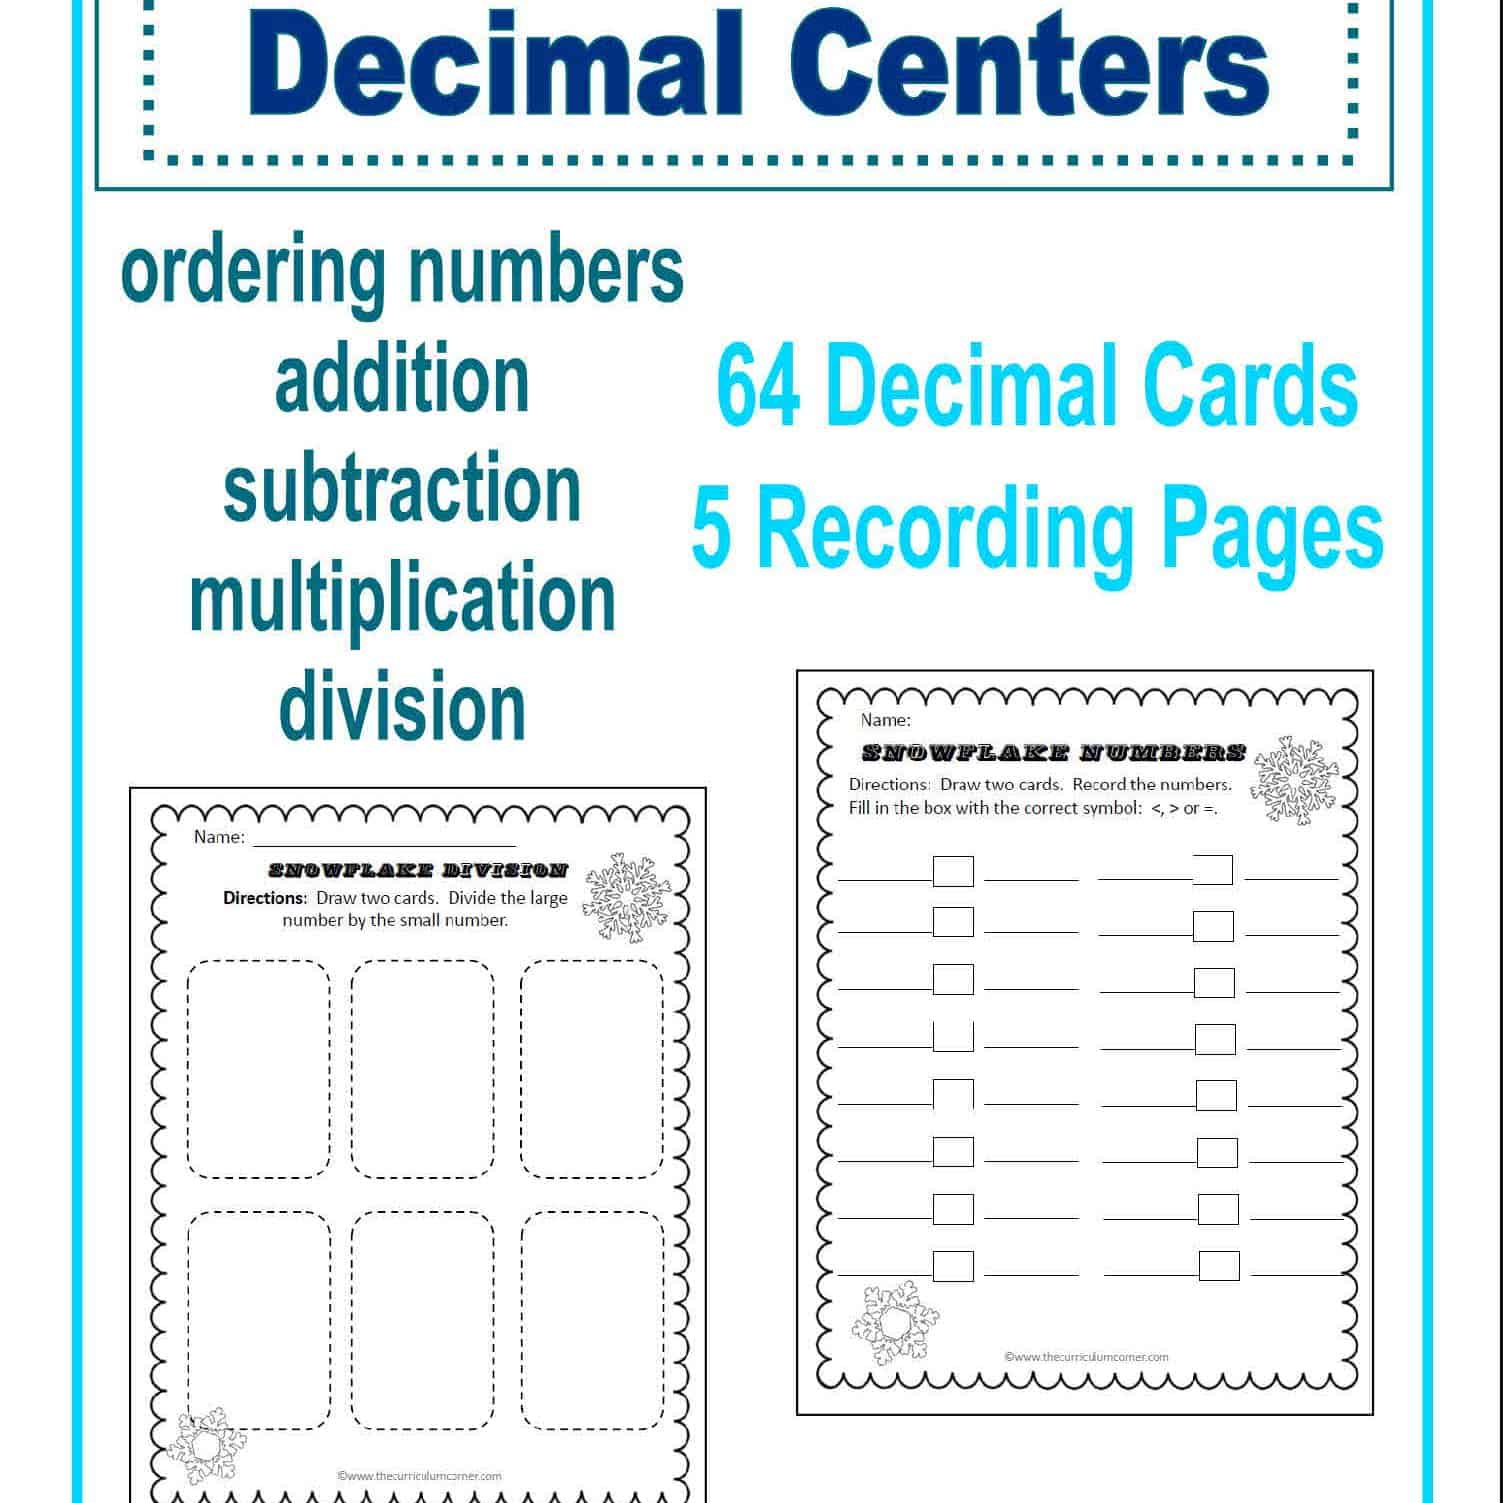 Decimal Centers | Snowflake Themed